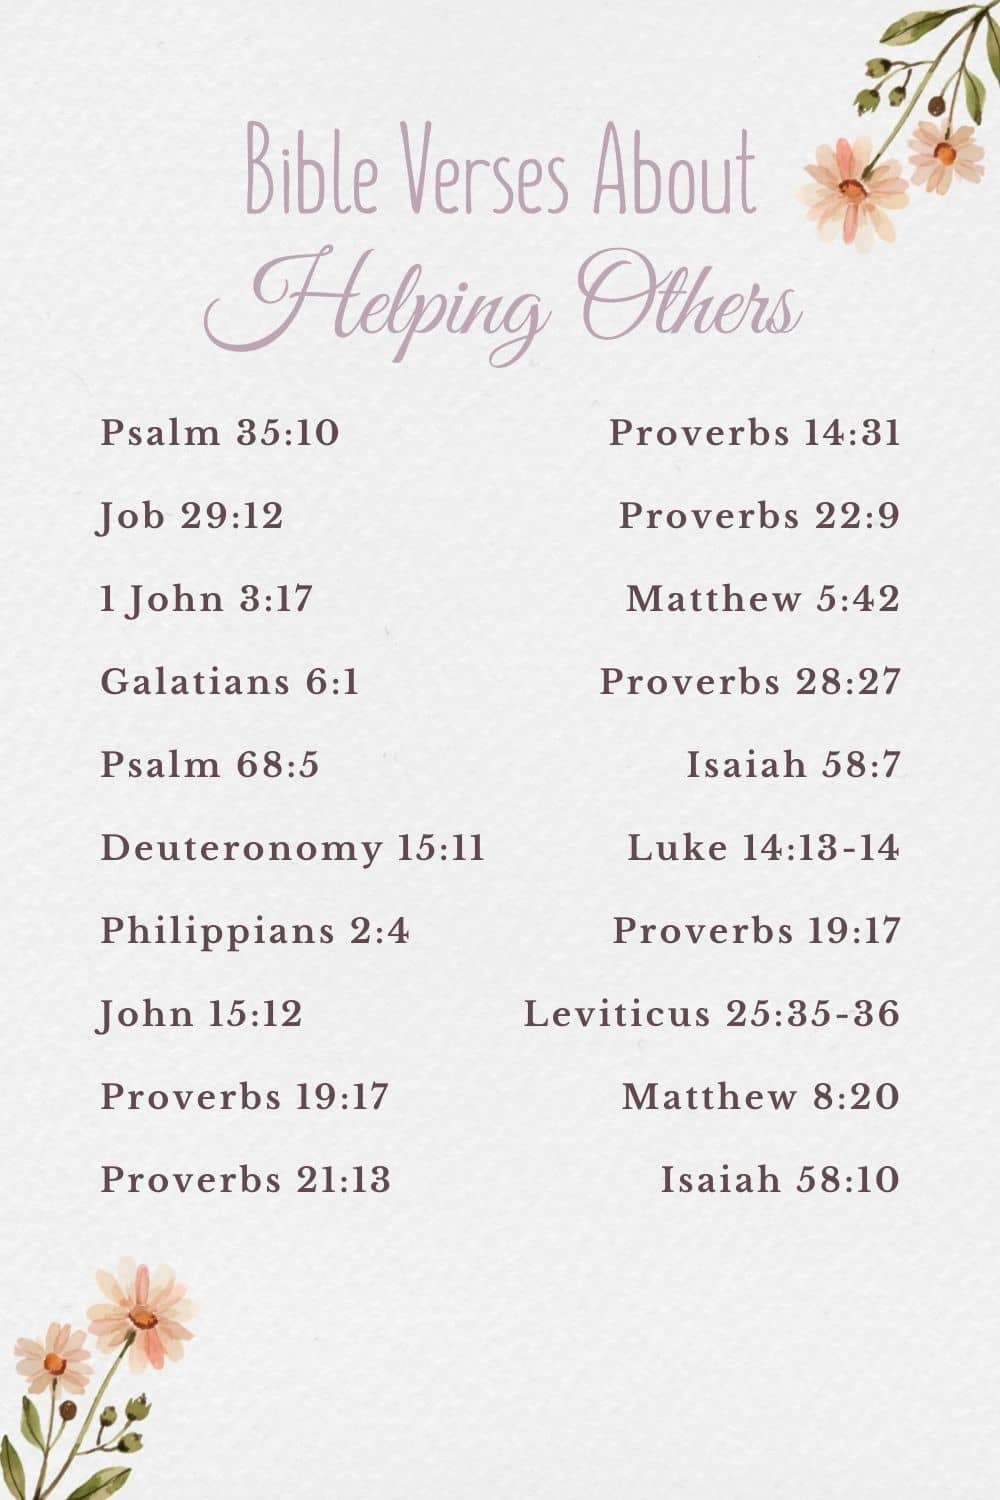 Bible verses about helping the poor bible verses about helping the homeless bible verses about helping others